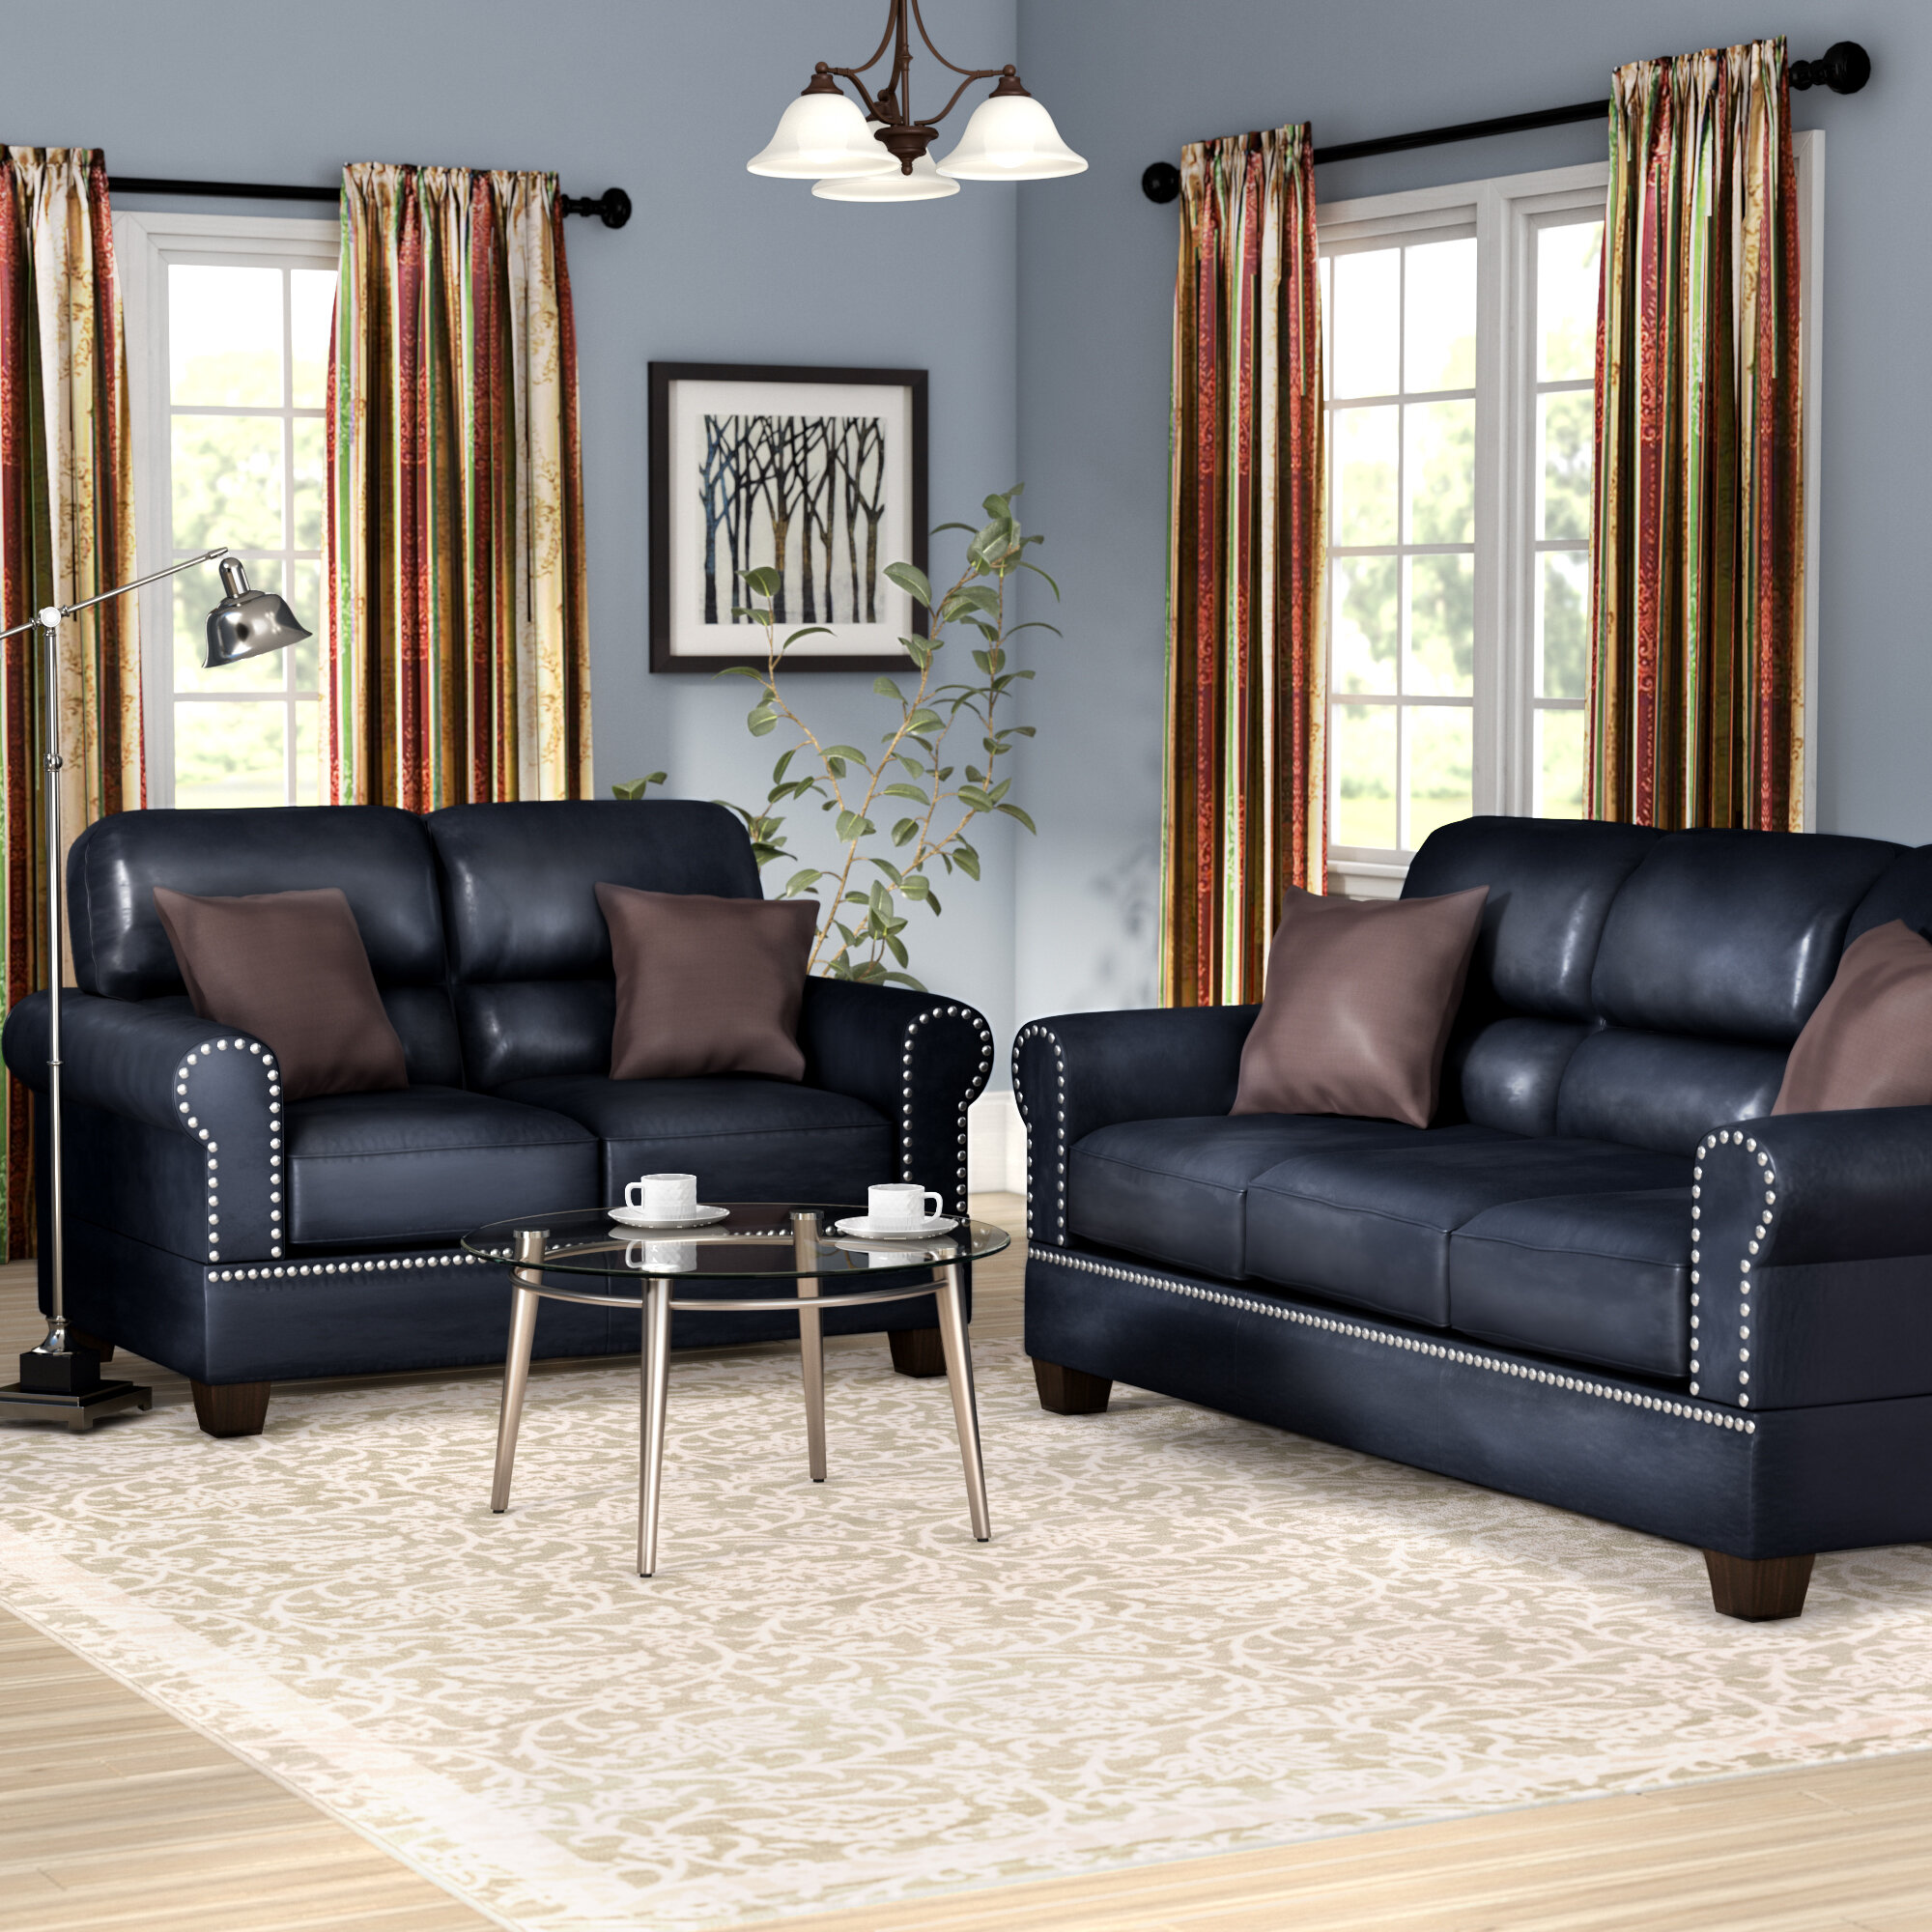 Charlton home boyster 2 piece living room set reviews wayfair